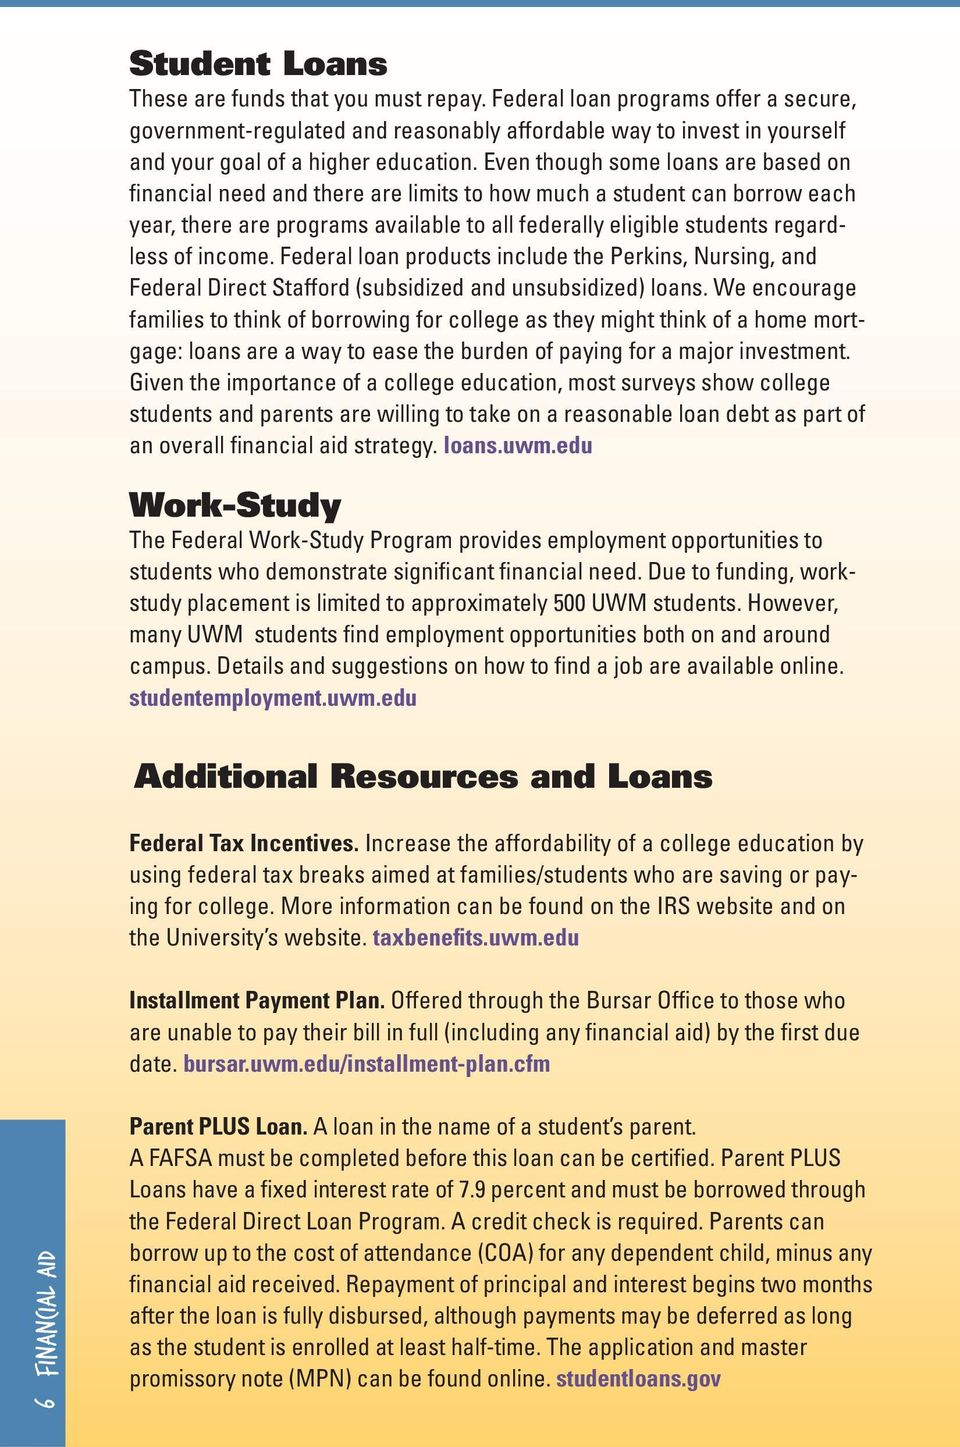 Uwm Financial Aid >> Financial Aid Distribution At Uwm Types And Trends Pdf